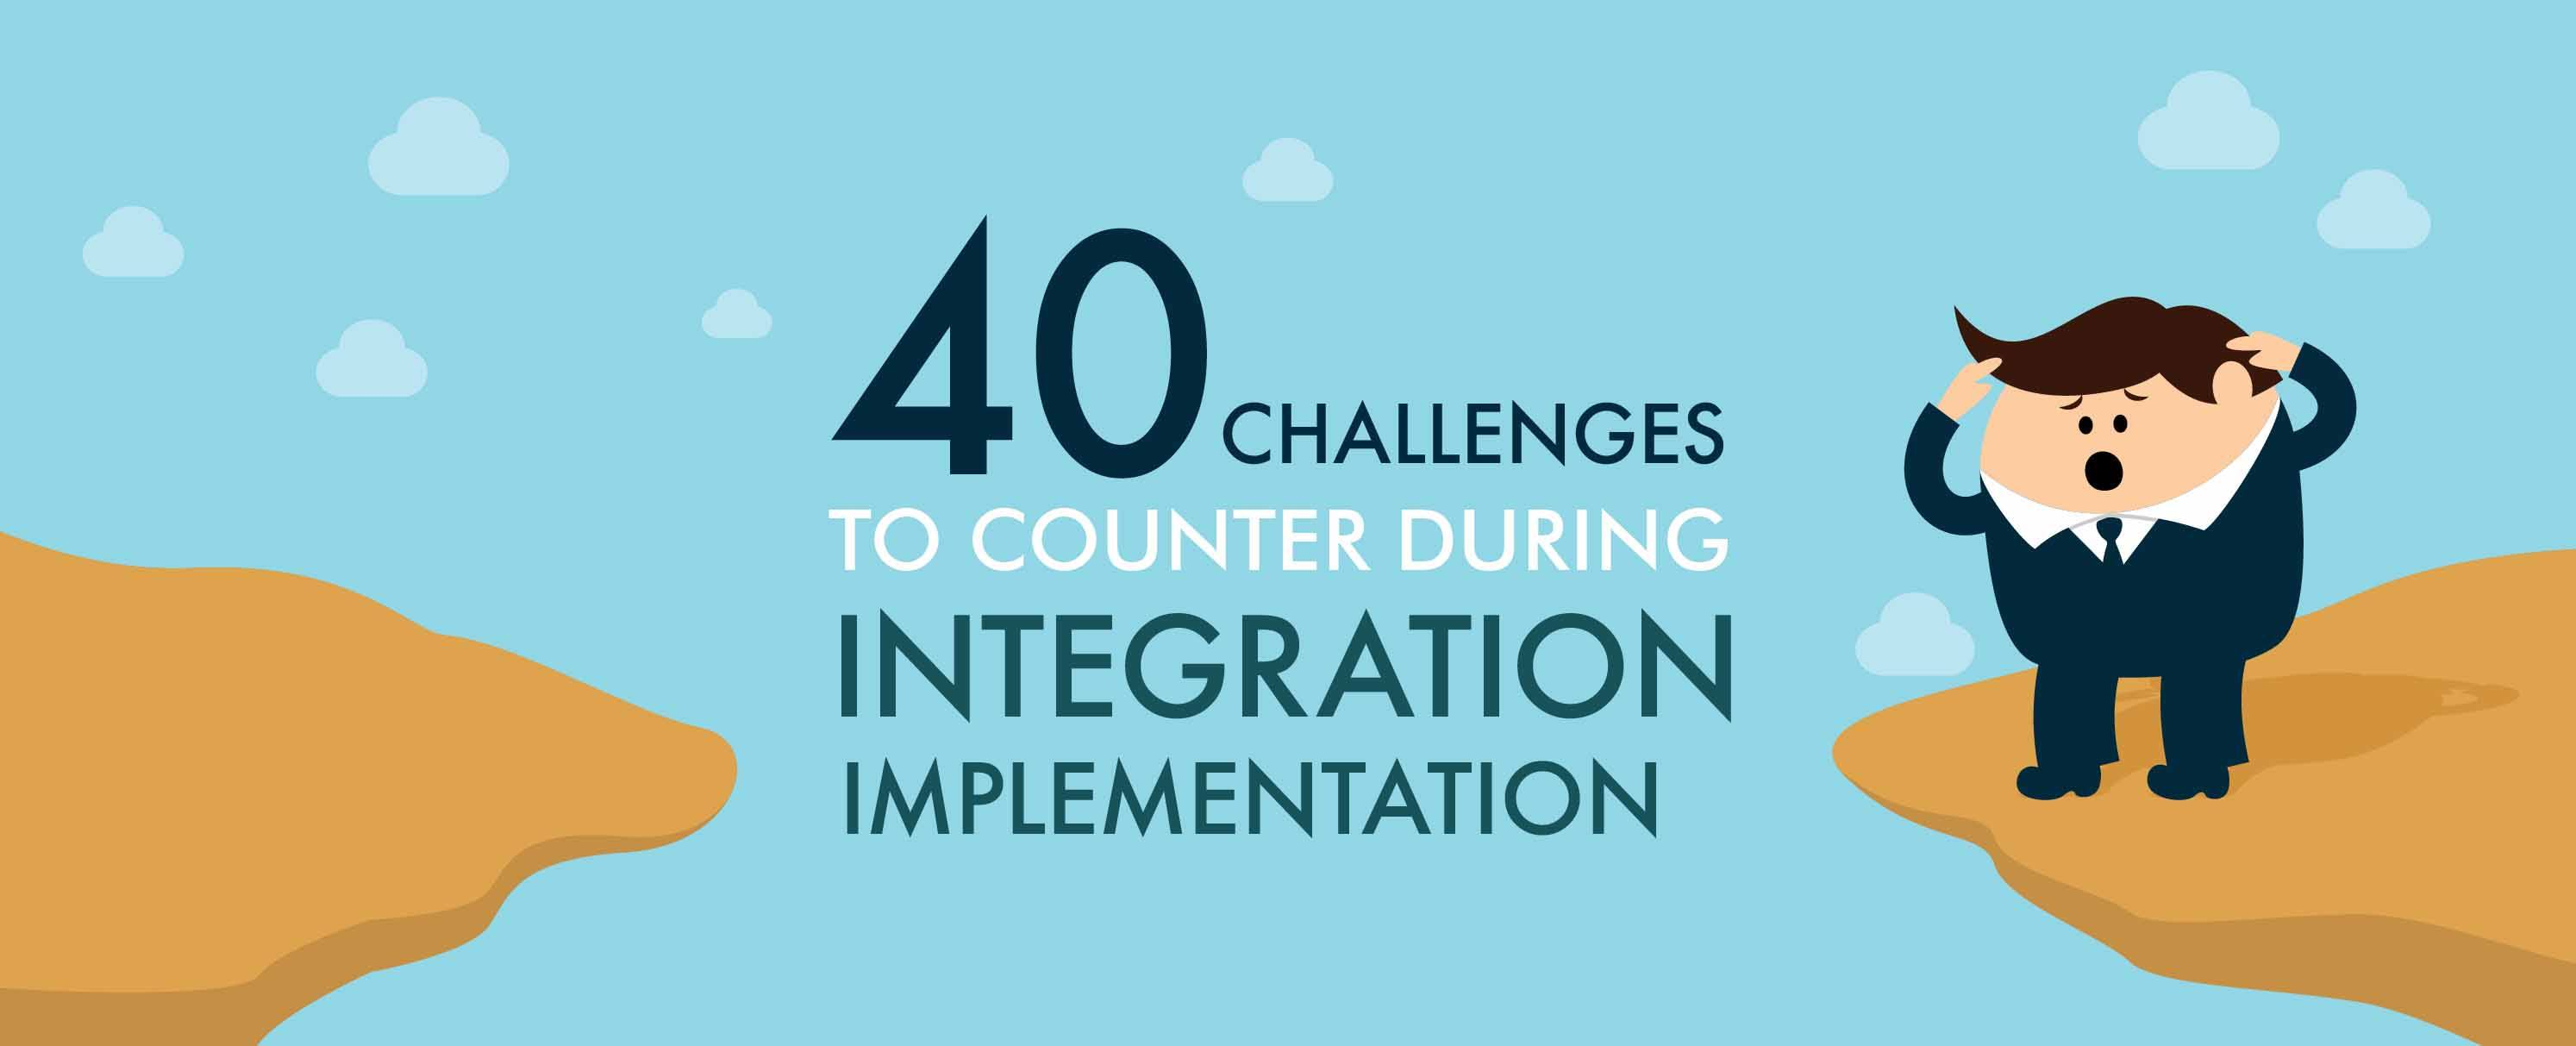 Challenges-to-Counter-during-Integration-Implementation